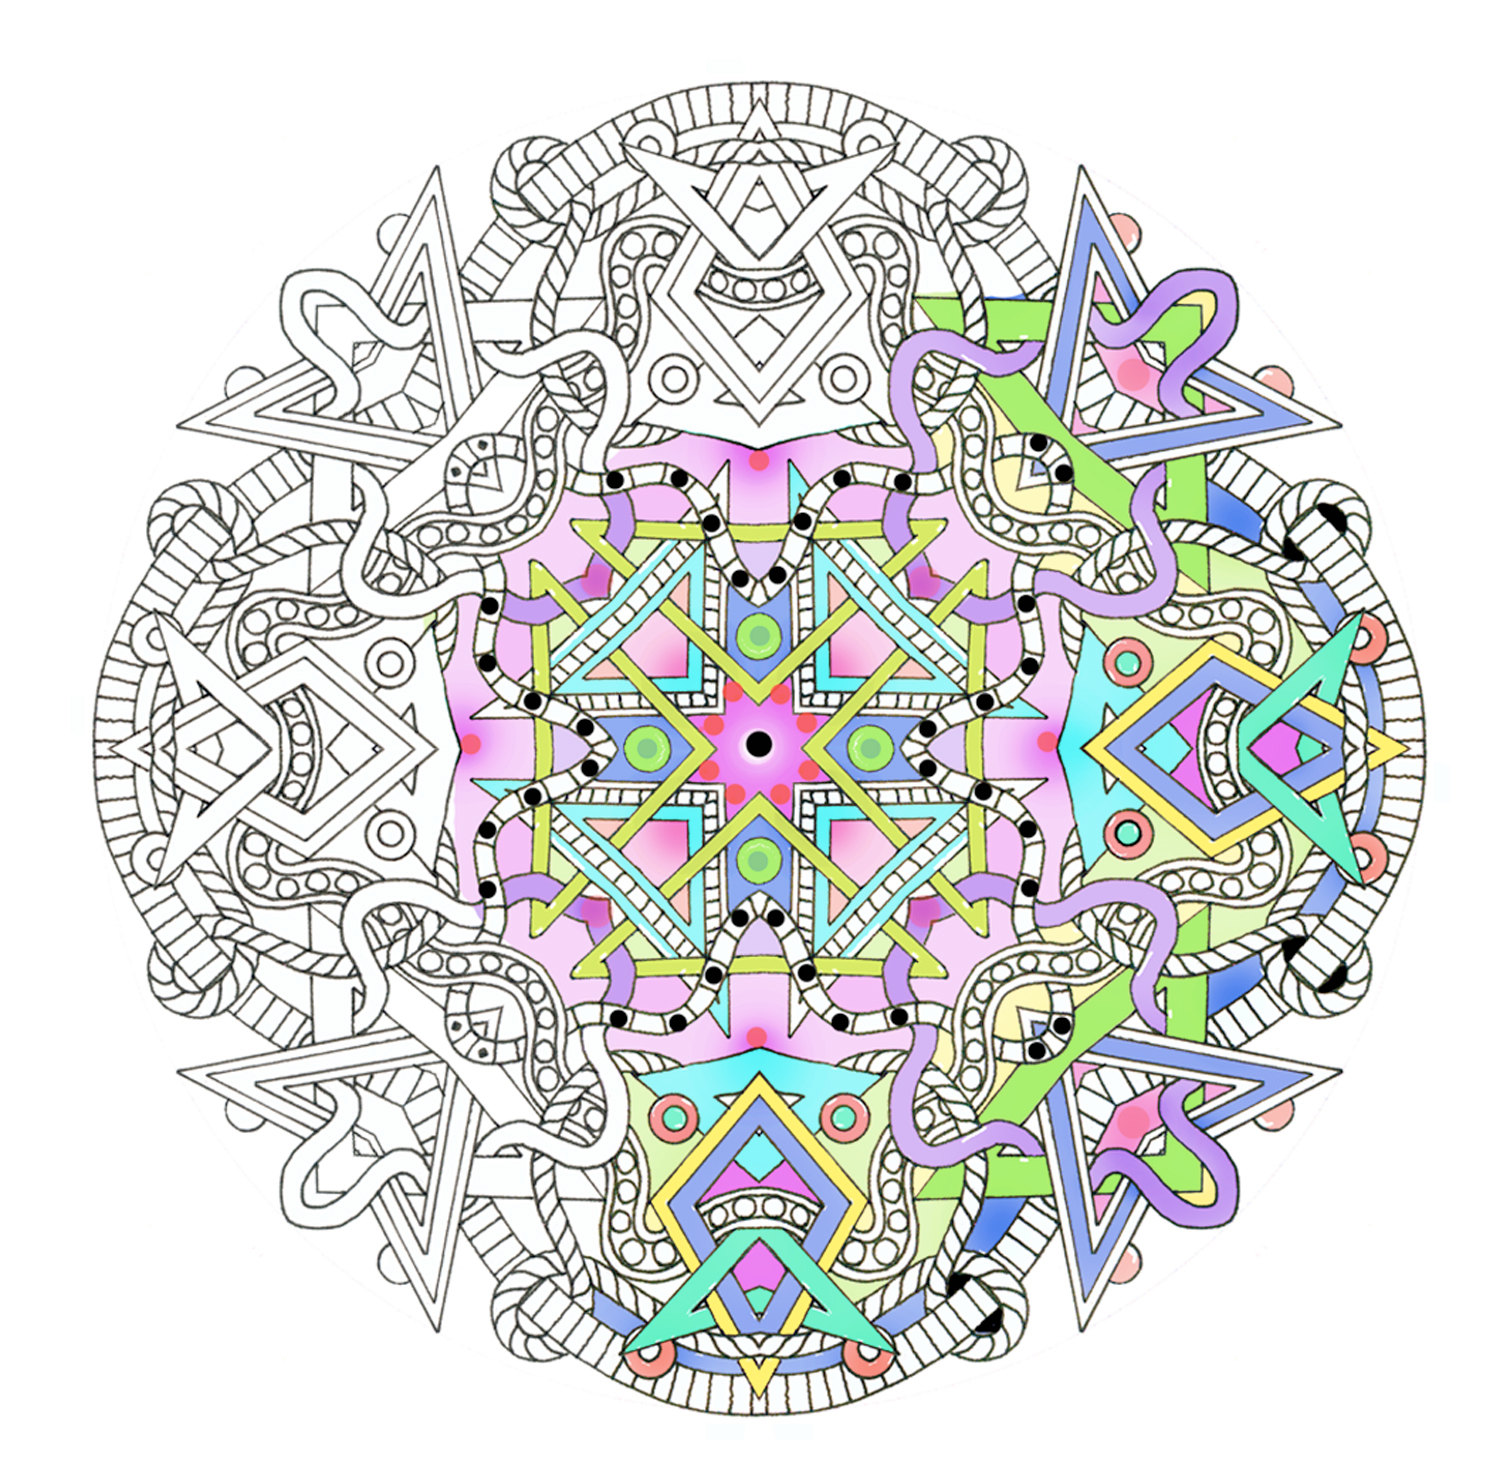 Adult Coloring Pages: City Of Kik: The Grown-Up Coloring Book Trend